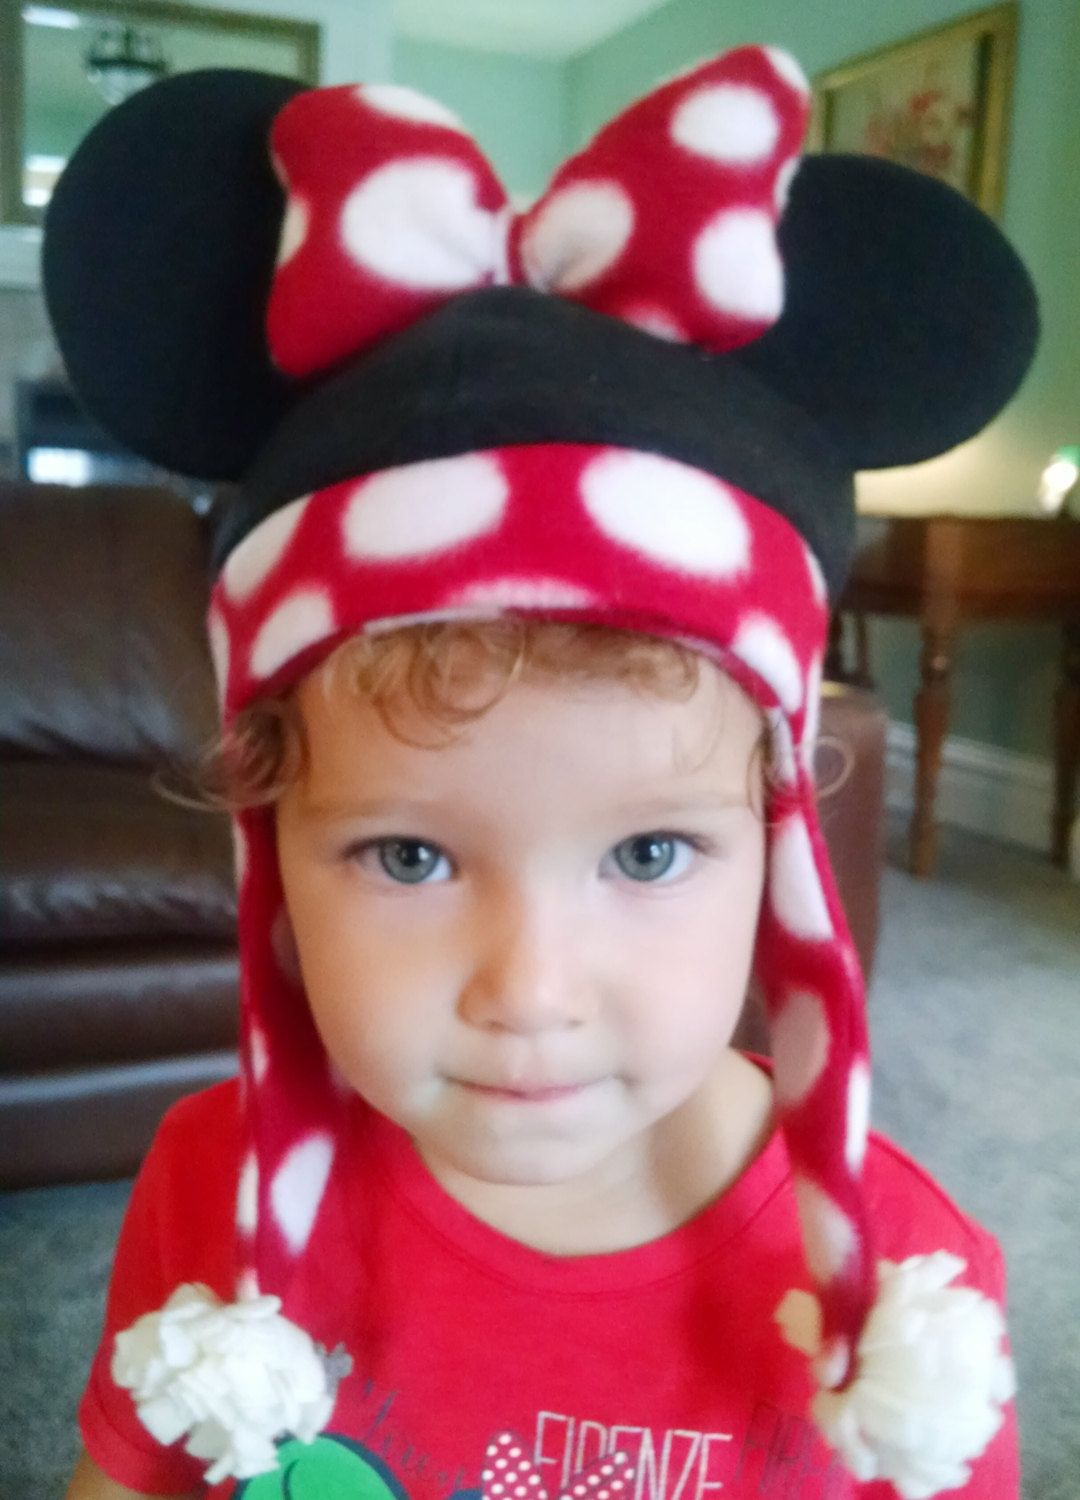 Minnie Mouse fleece hat design, size 2/4 by SoSewMimi on Etsy